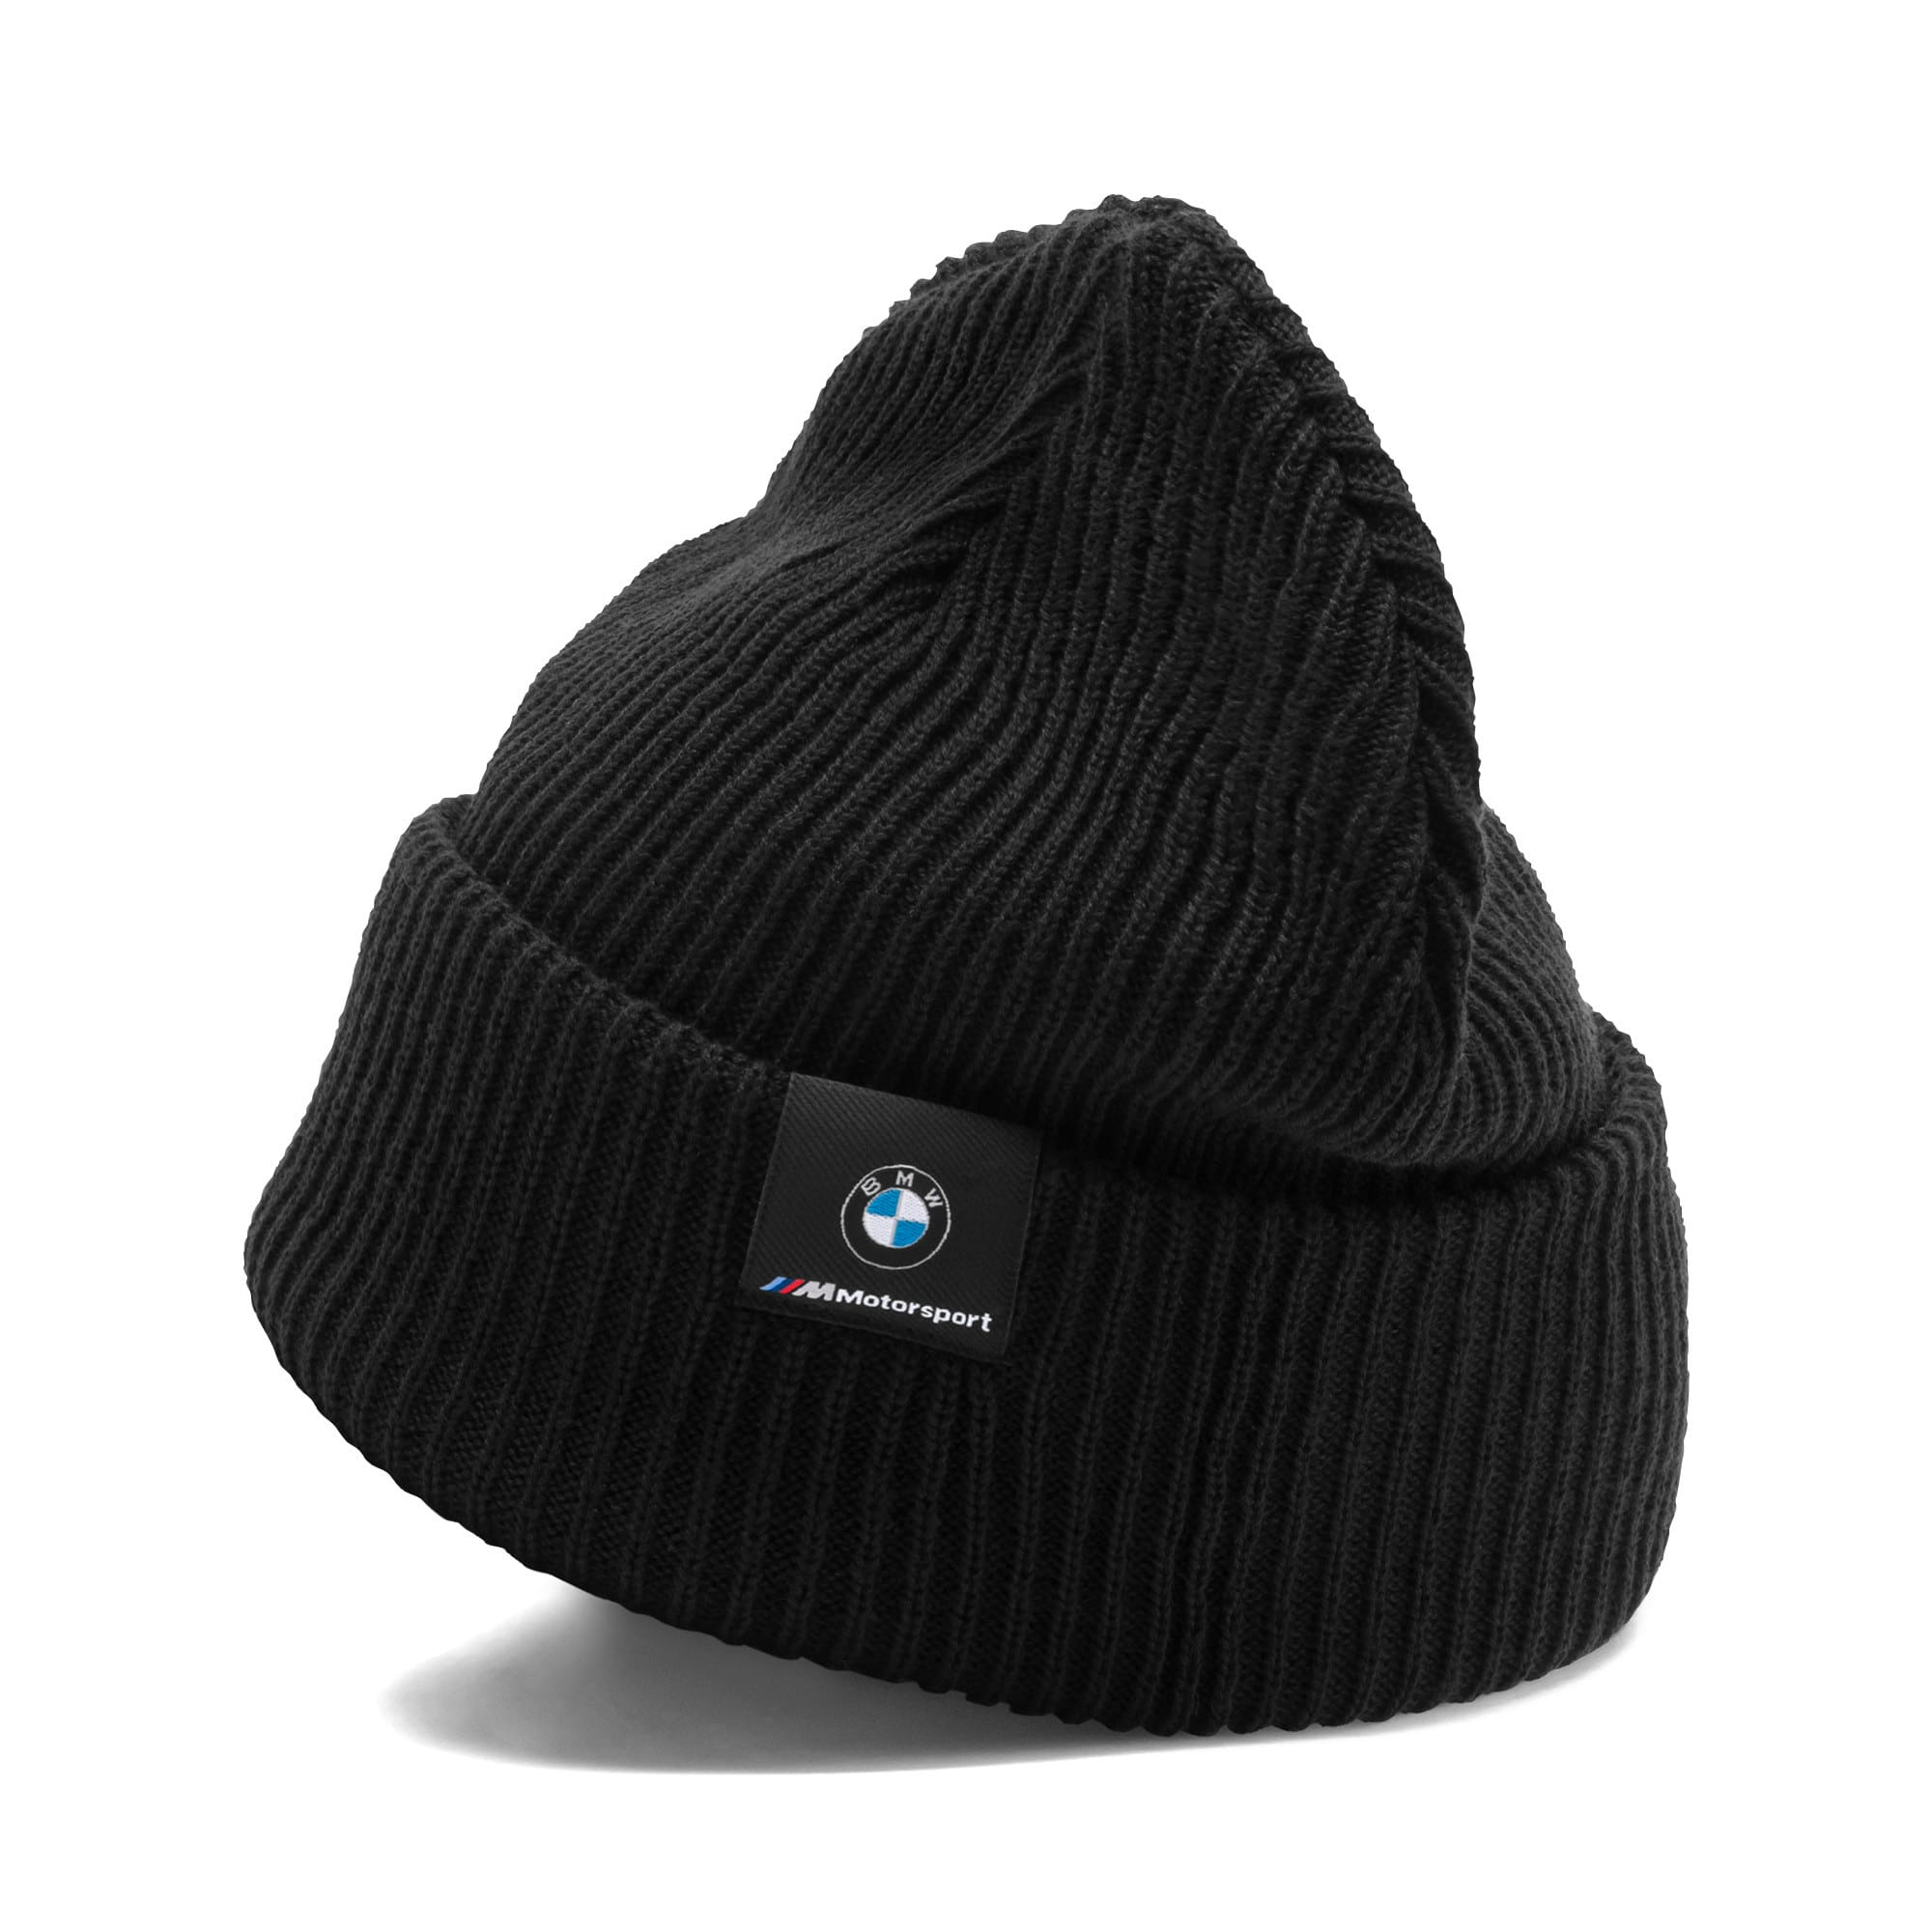 Thumbnail 1 of Bonnet BMW Motorsport, Puma Black, medium